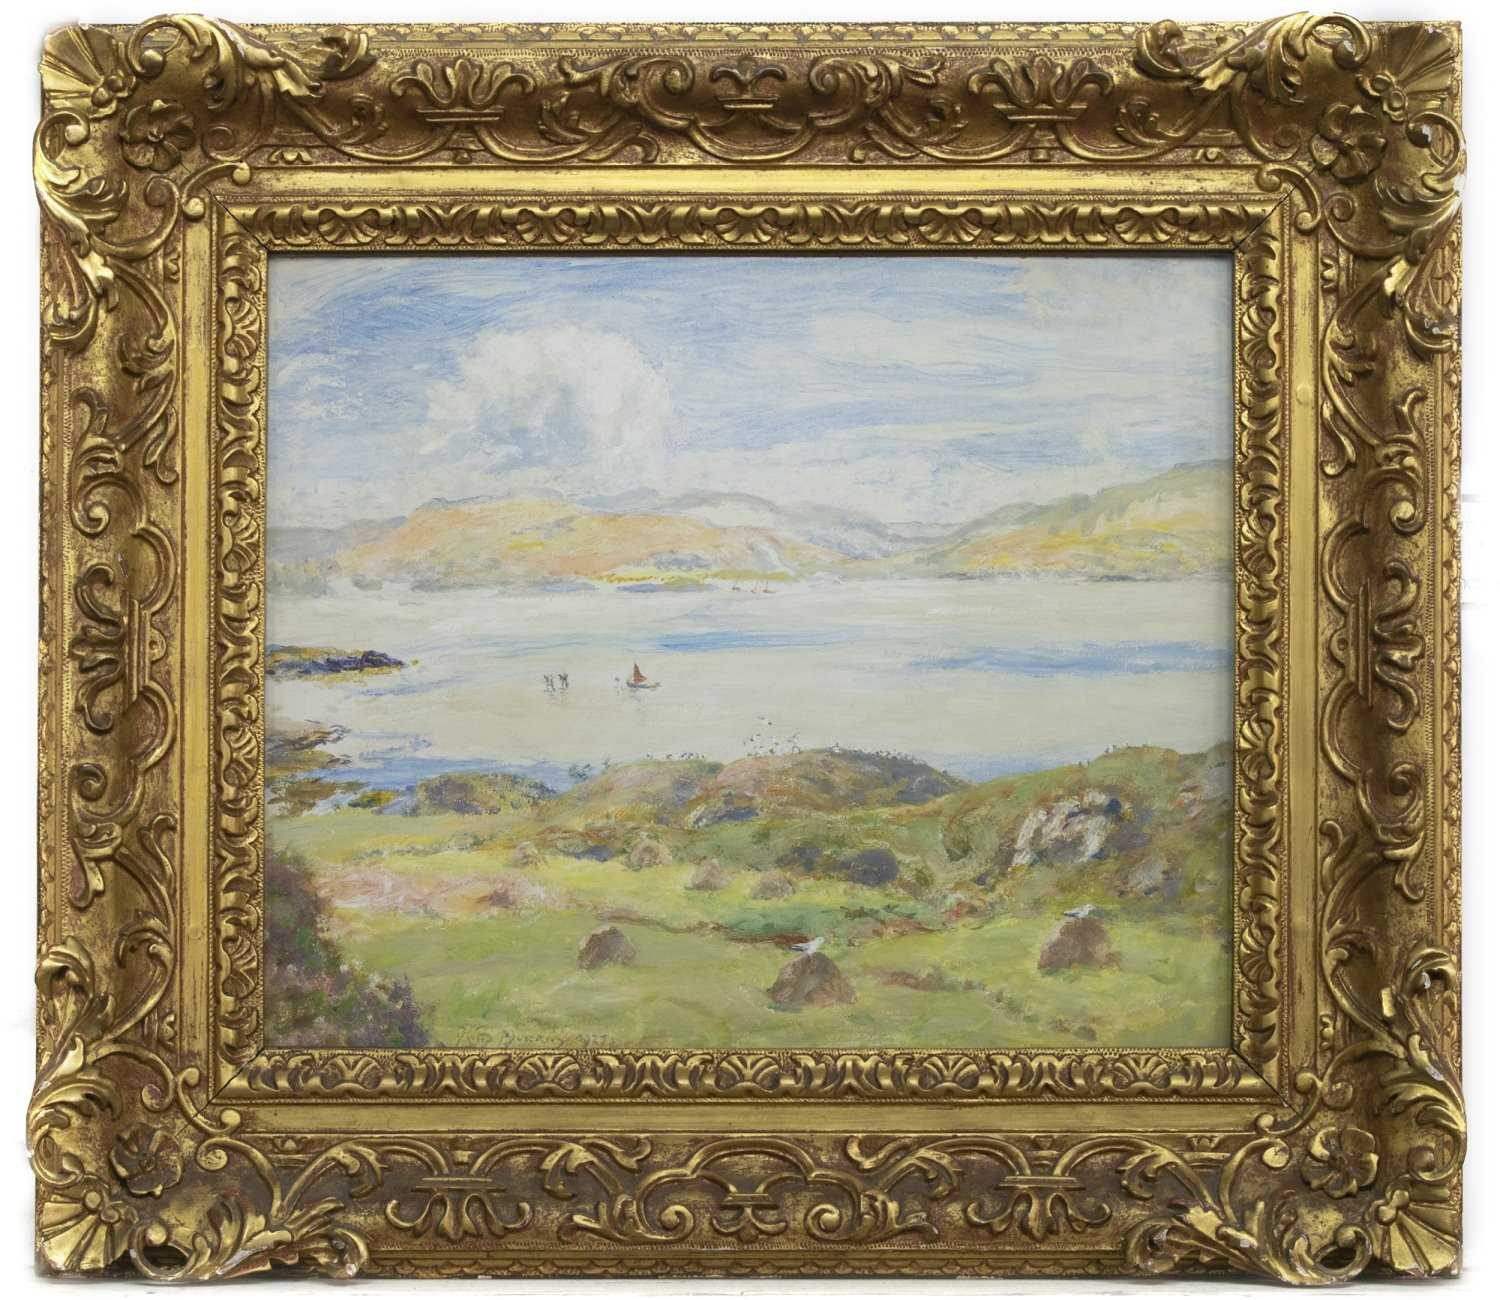 Lot 89 - THE WHITE SANDS OF MORAR, AN OIL BY SIR DAVID MURRAY